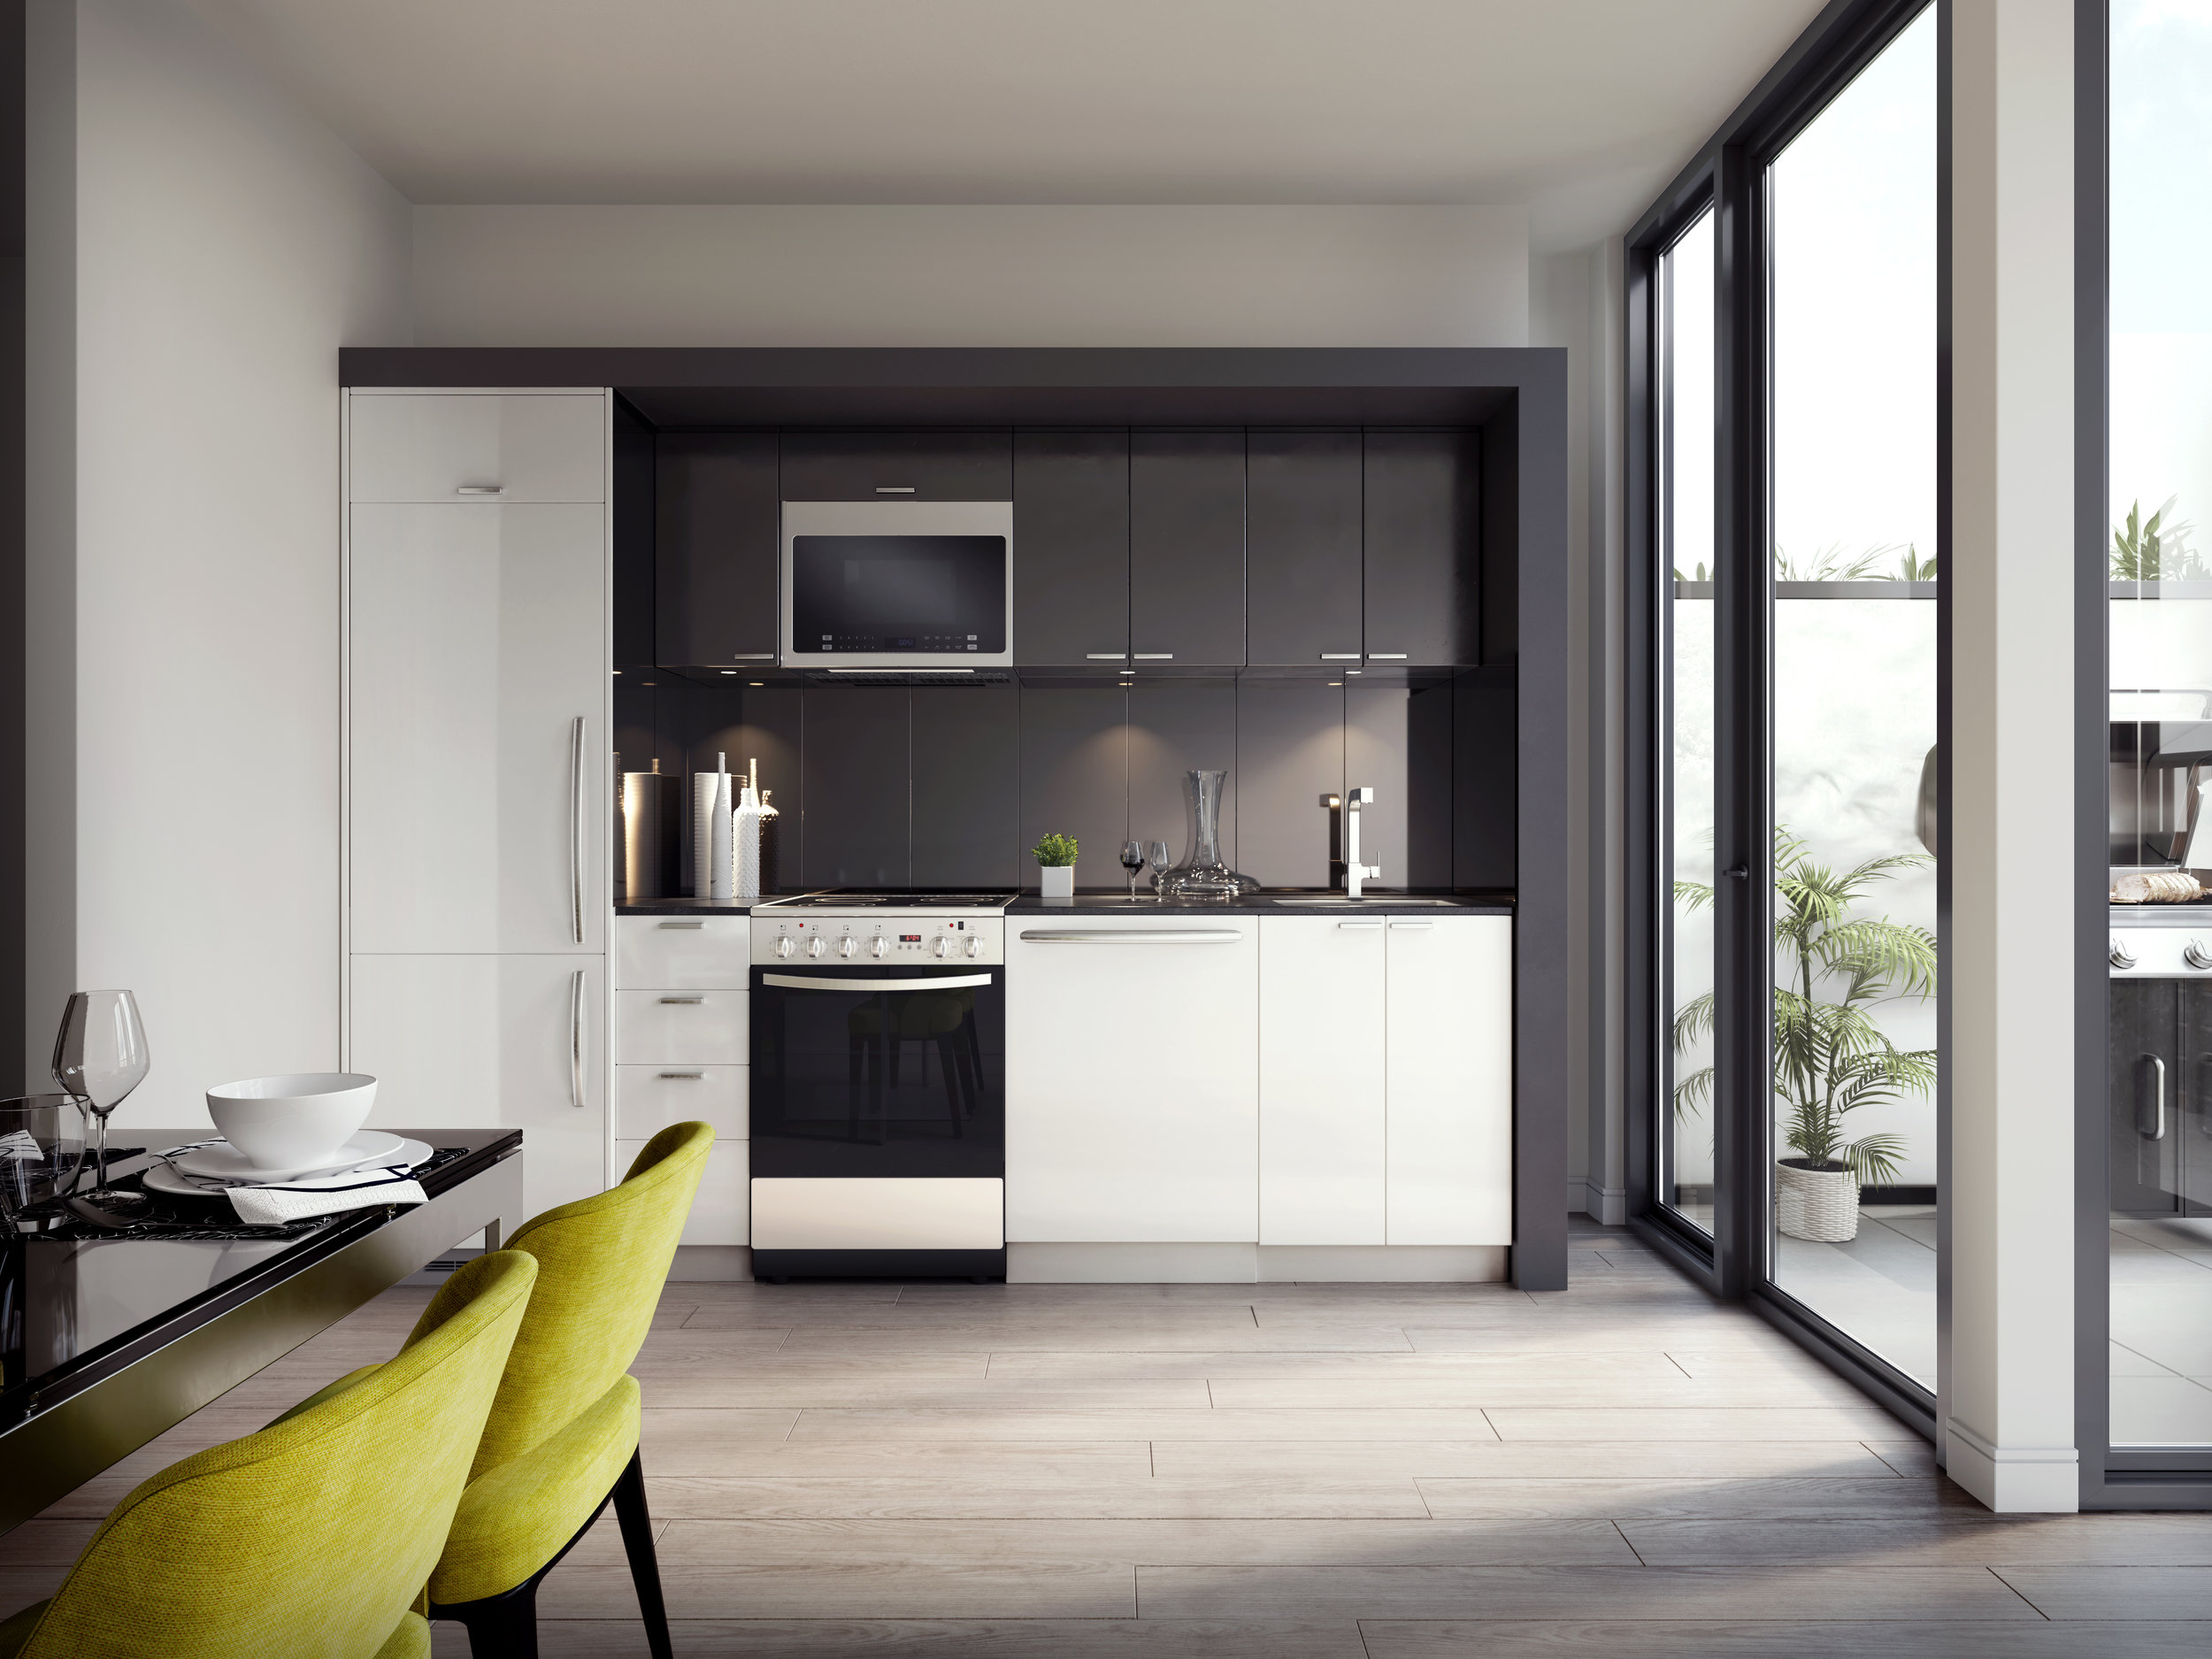 MRG-C7-Kitchen-190322-FINAL-HR.jpg